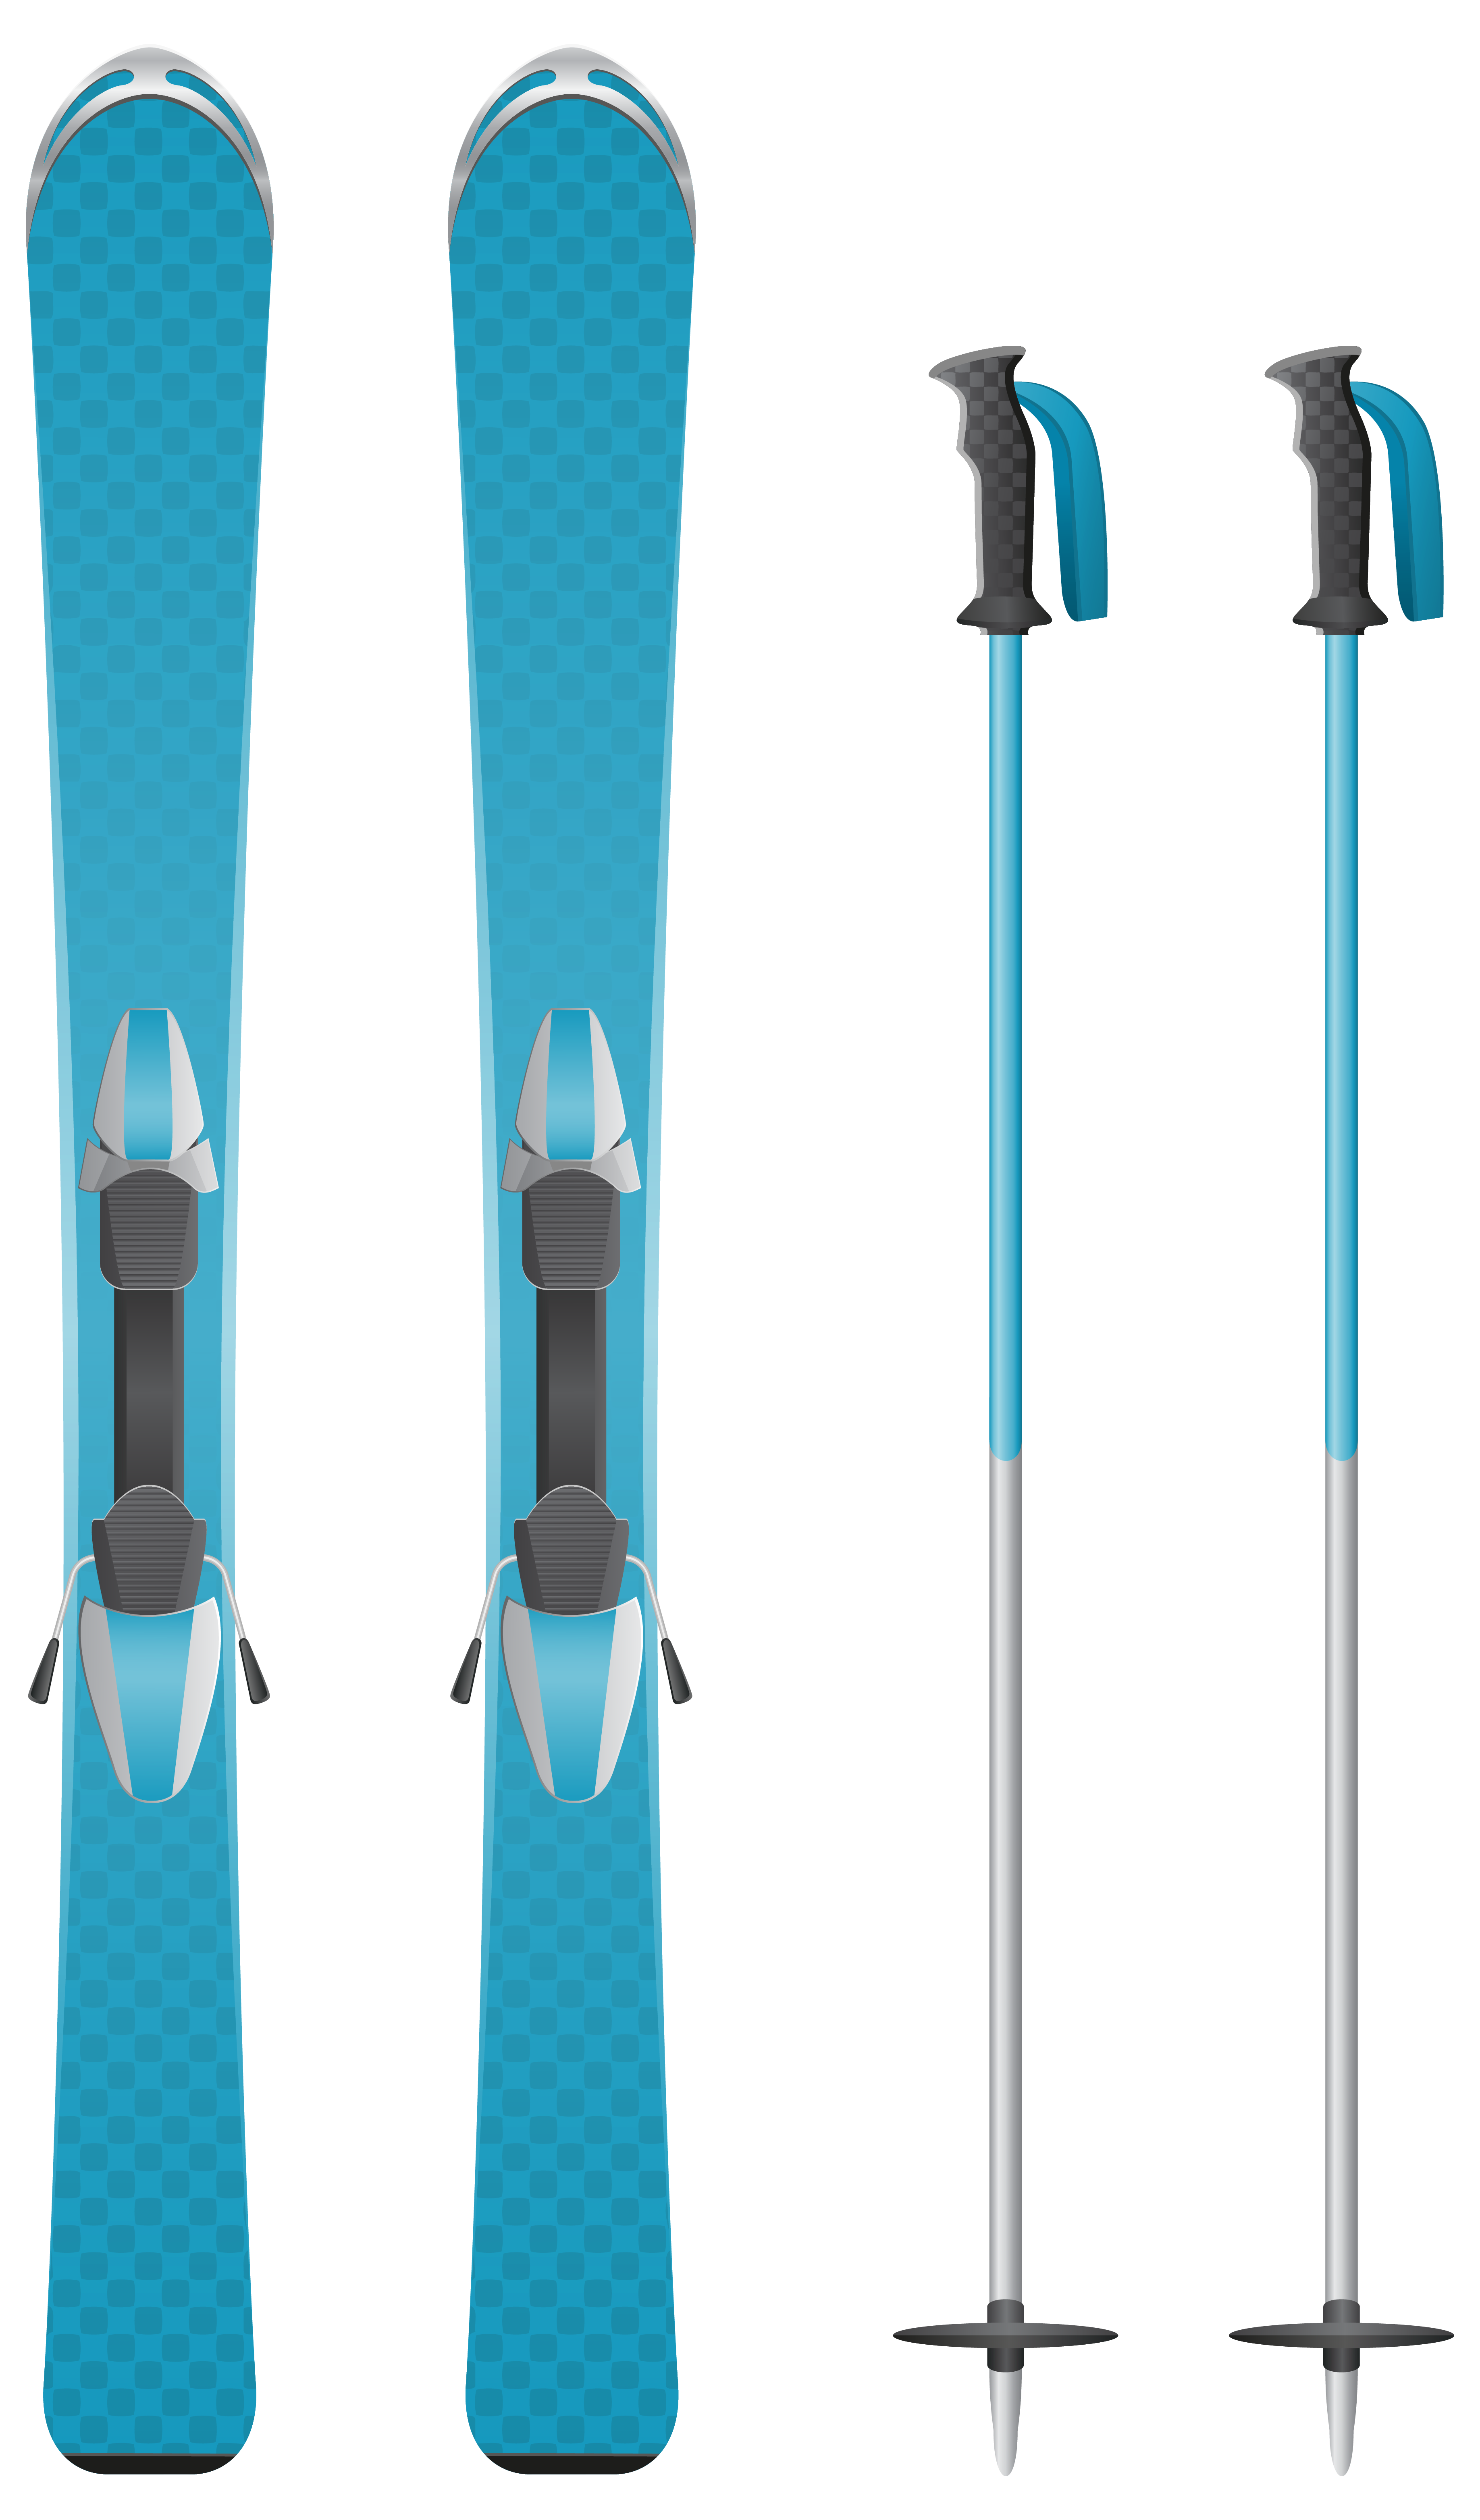 Skis clipart. Blue png image gallery